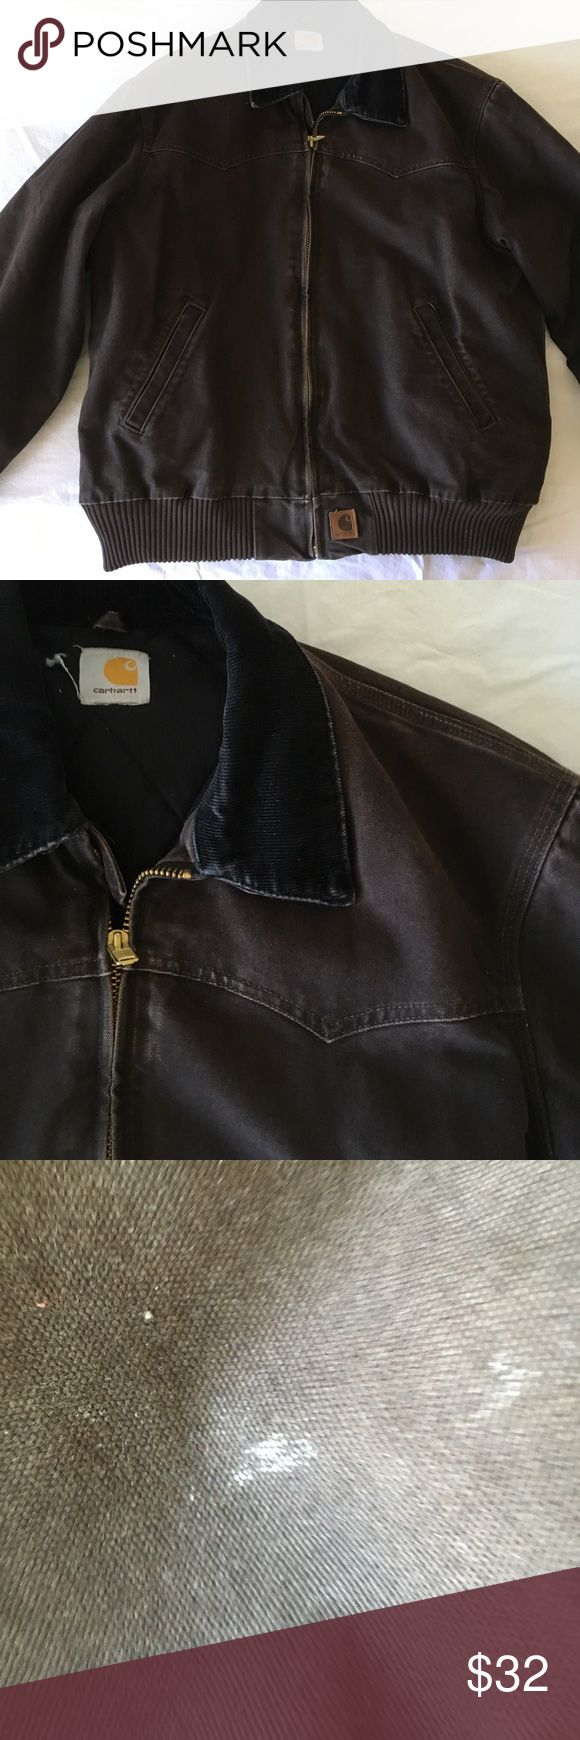 Brown carhartt jacket 20% off bundles and excepting all reasonable offers! The only flaw is the stain shown in last picture. Carhartt Jackets & Coats